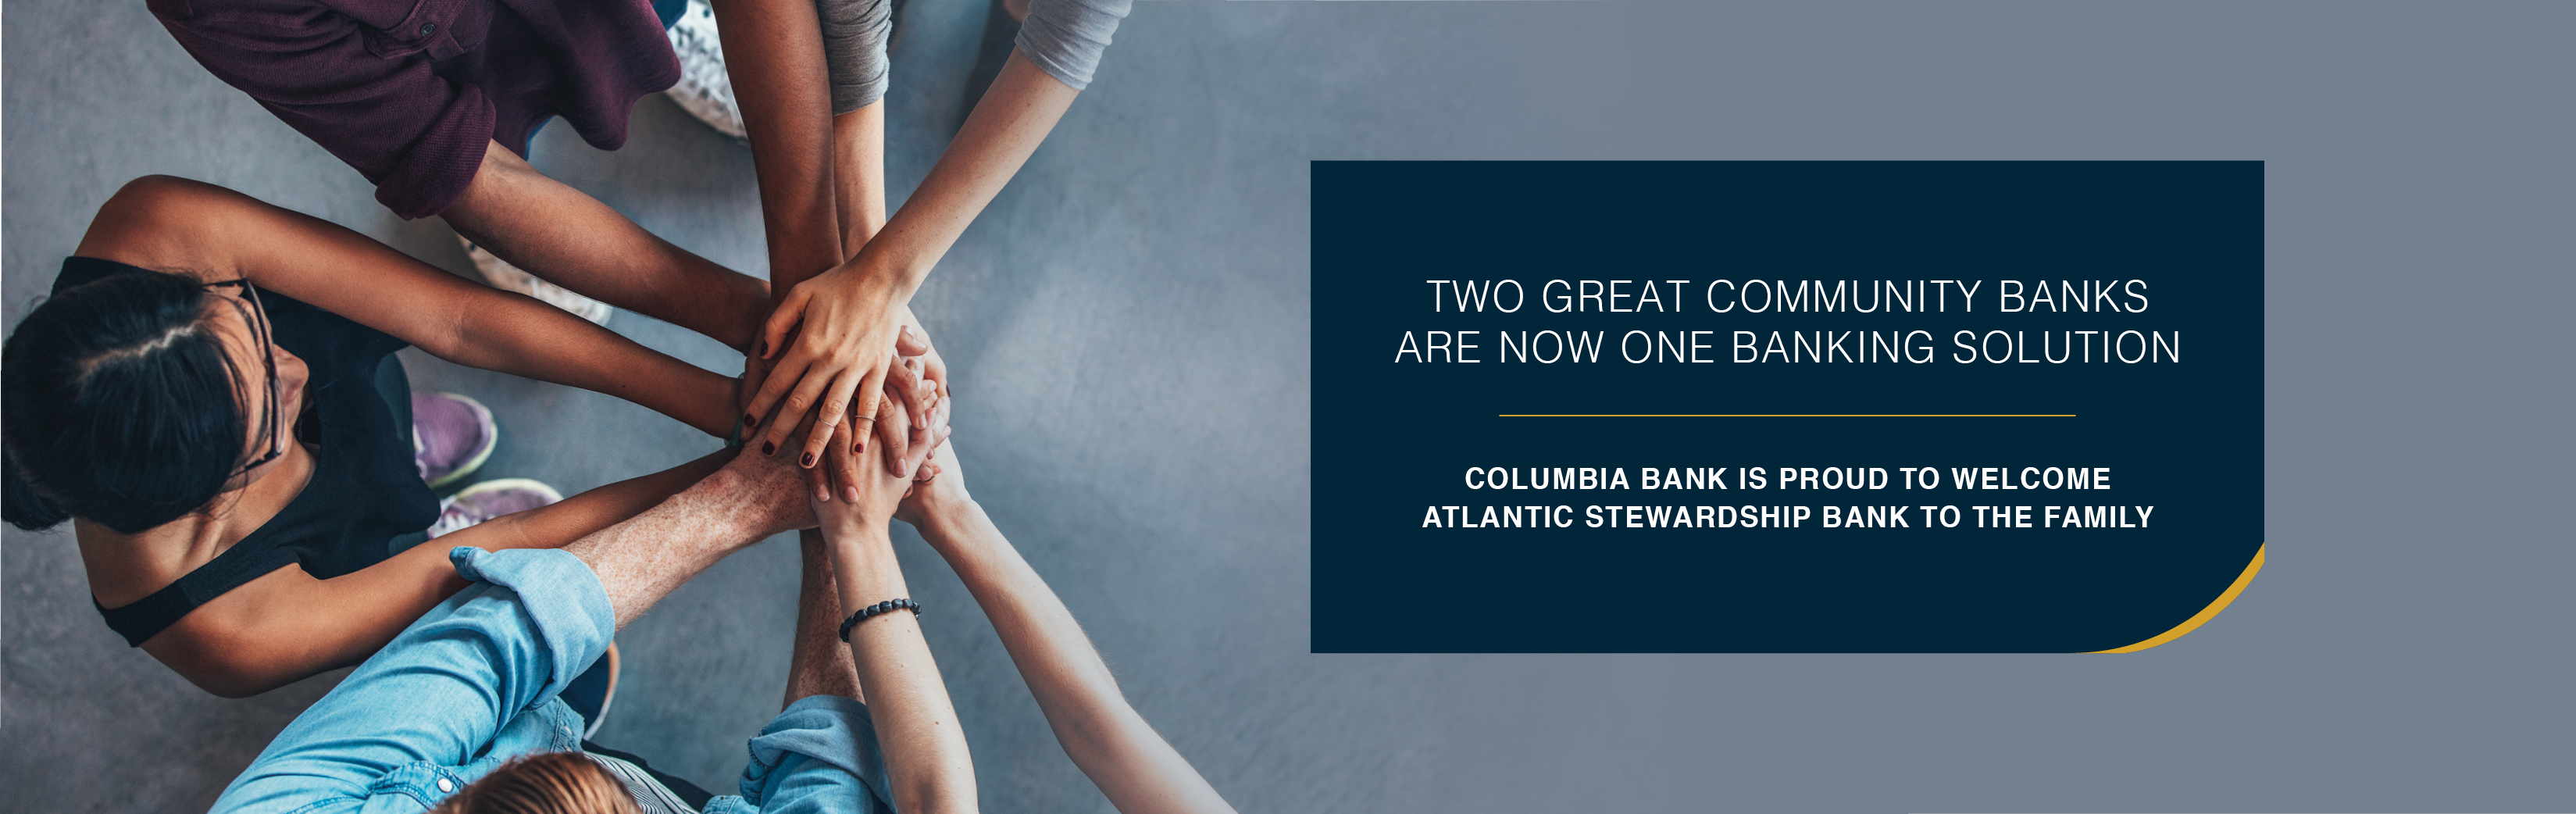 Atlantic Stewardship & Columbia Bank are now one banking soution